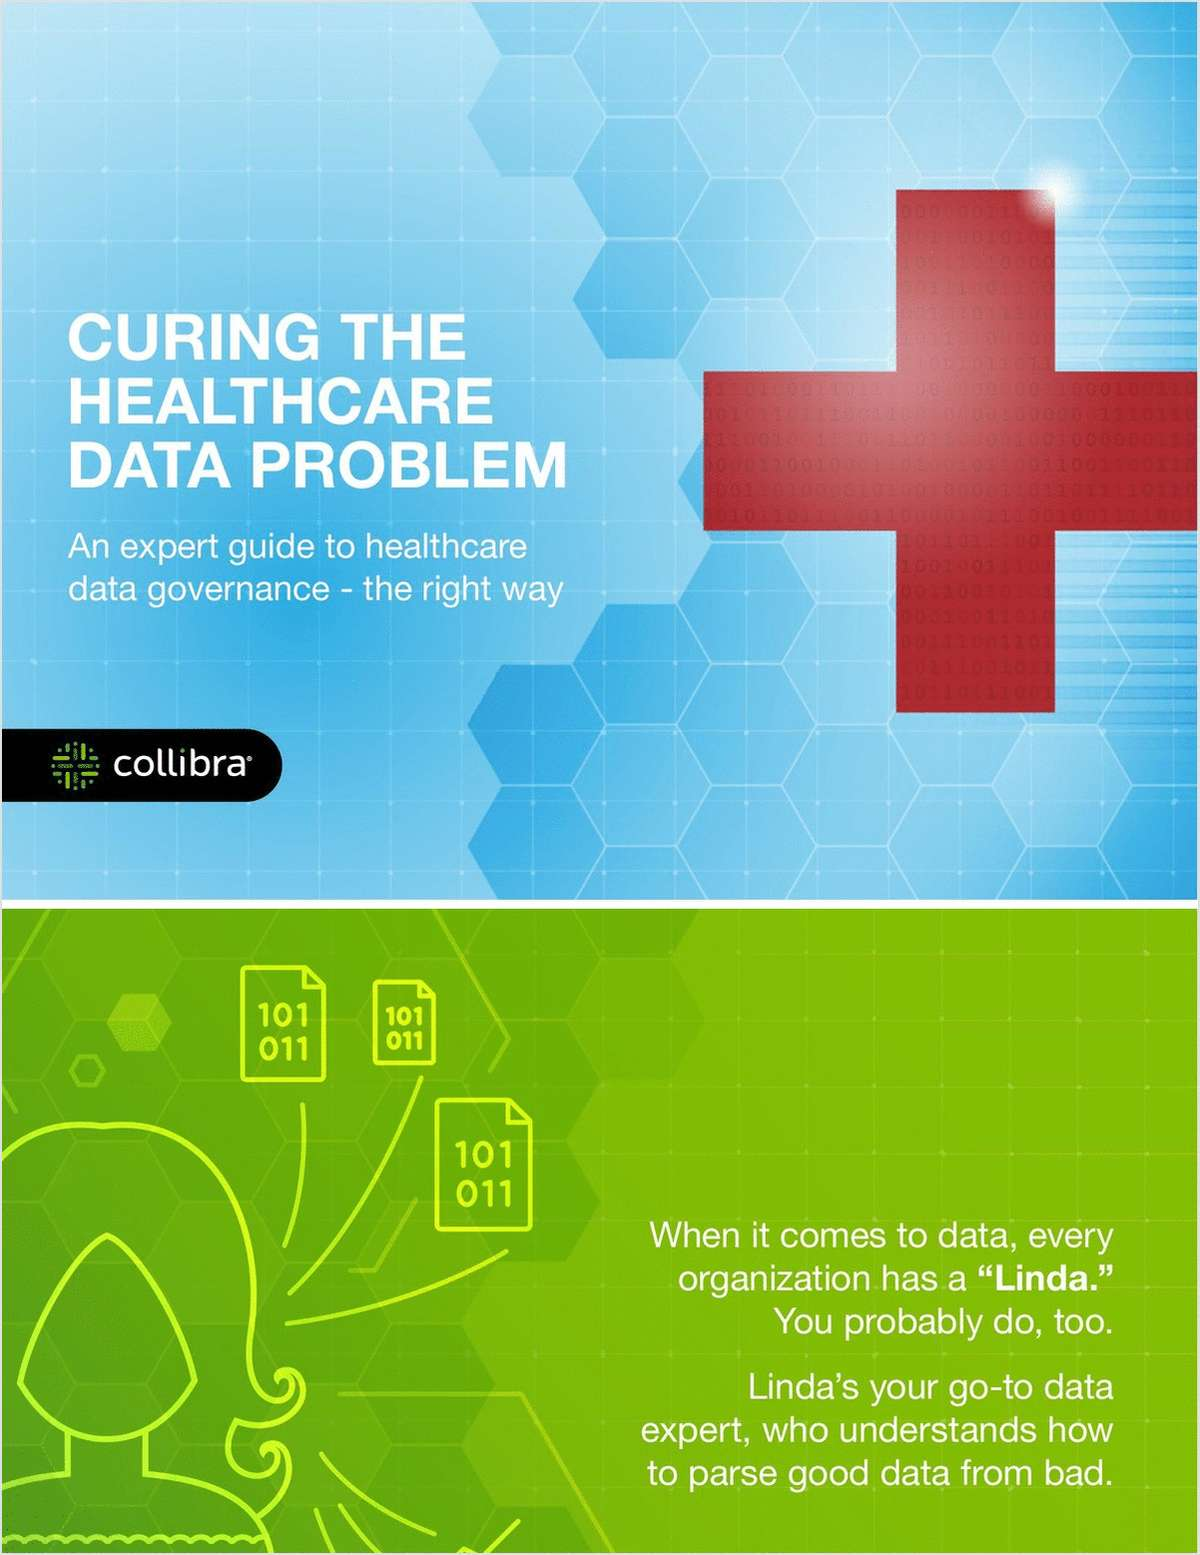 Curing the Healthcare Data Problem